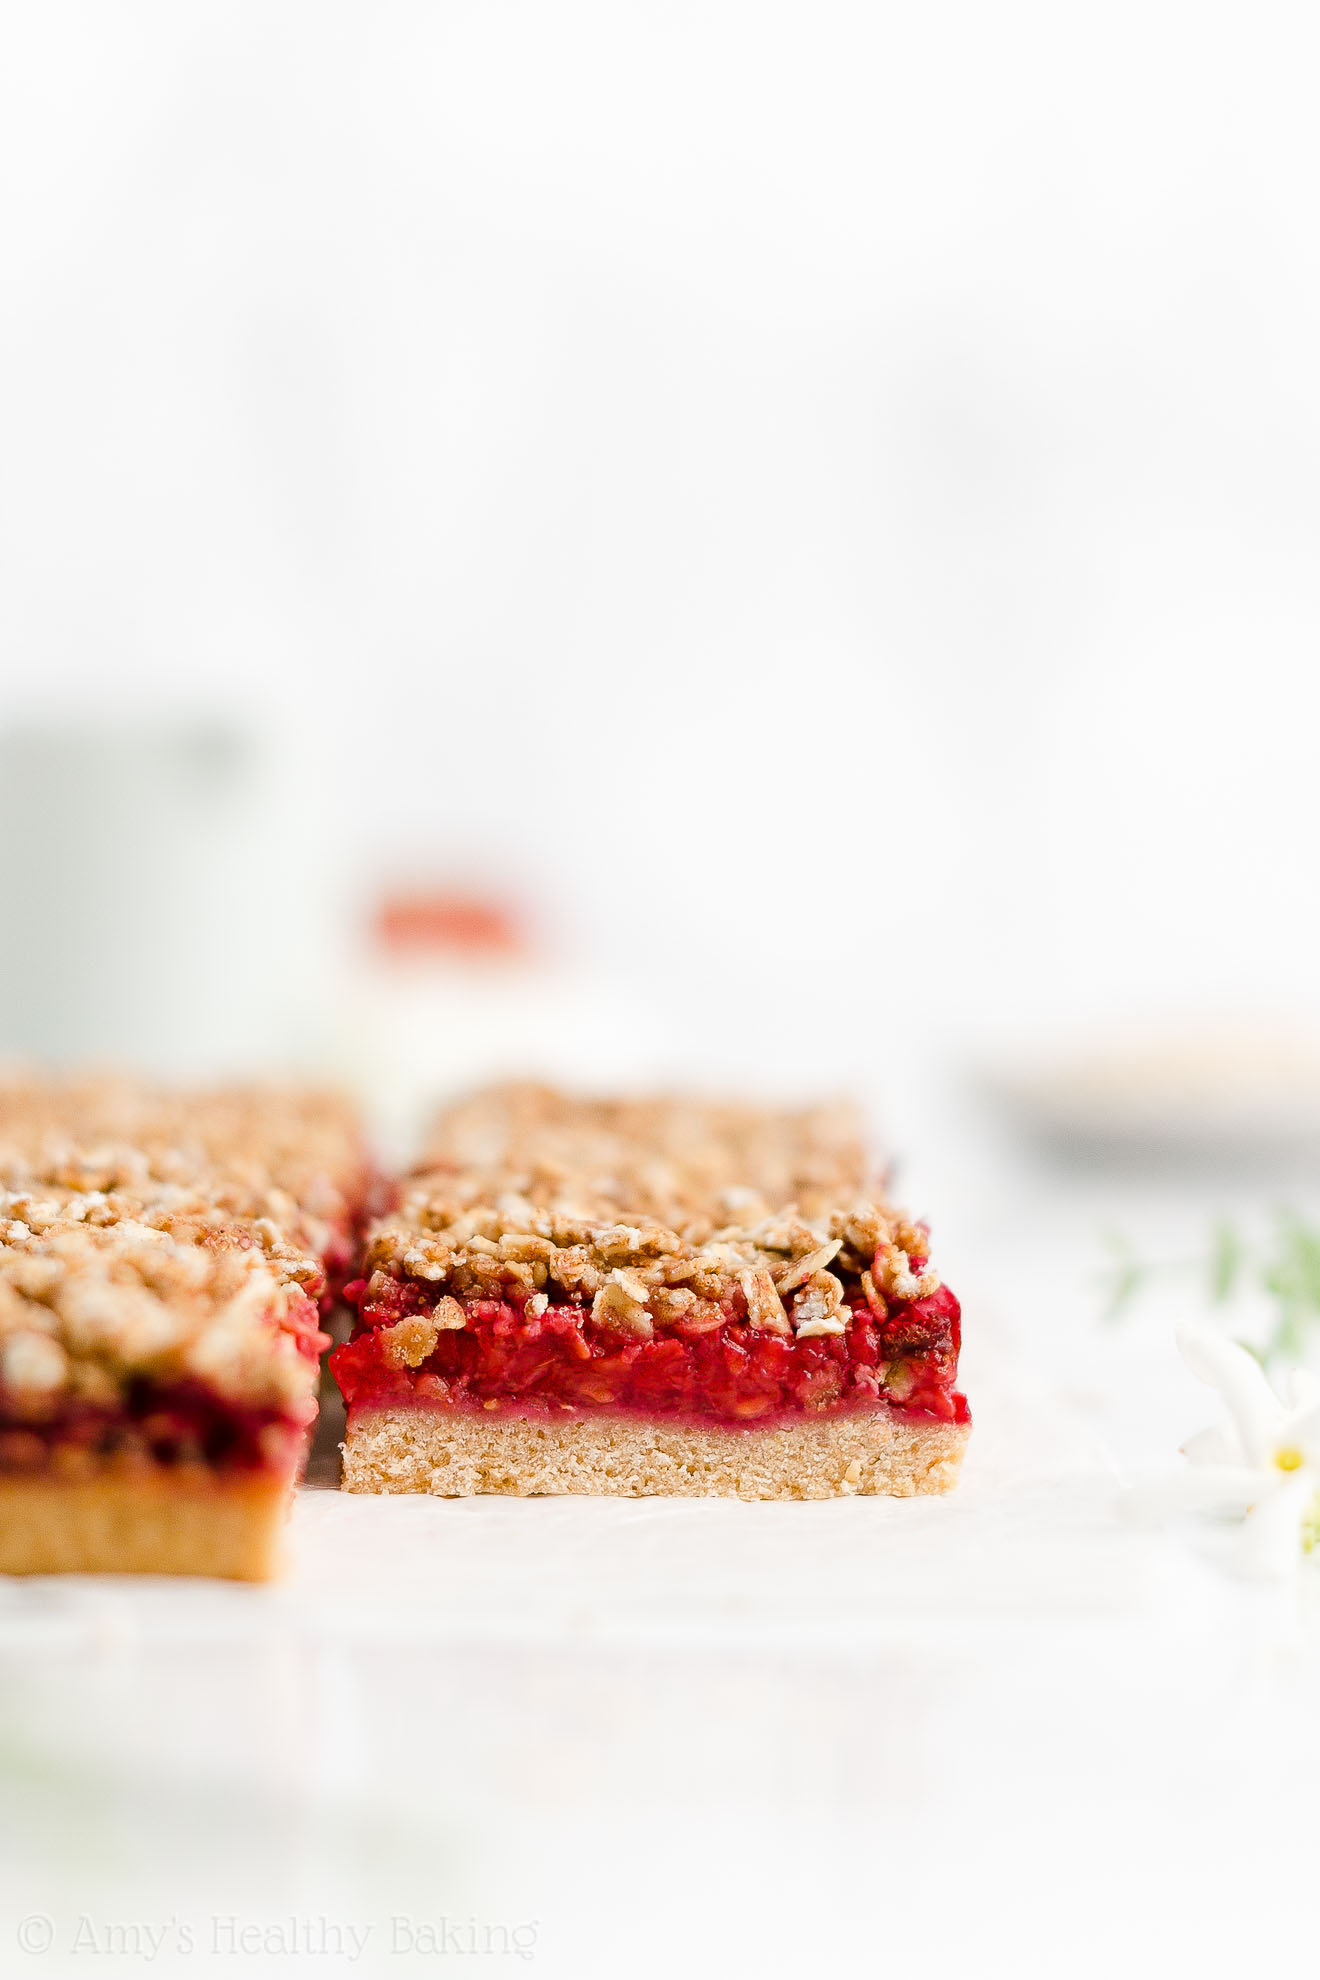 Easy Healthy Vegan Egg Free Dairy Free Fresh Raspberry Oat Crumble Bars